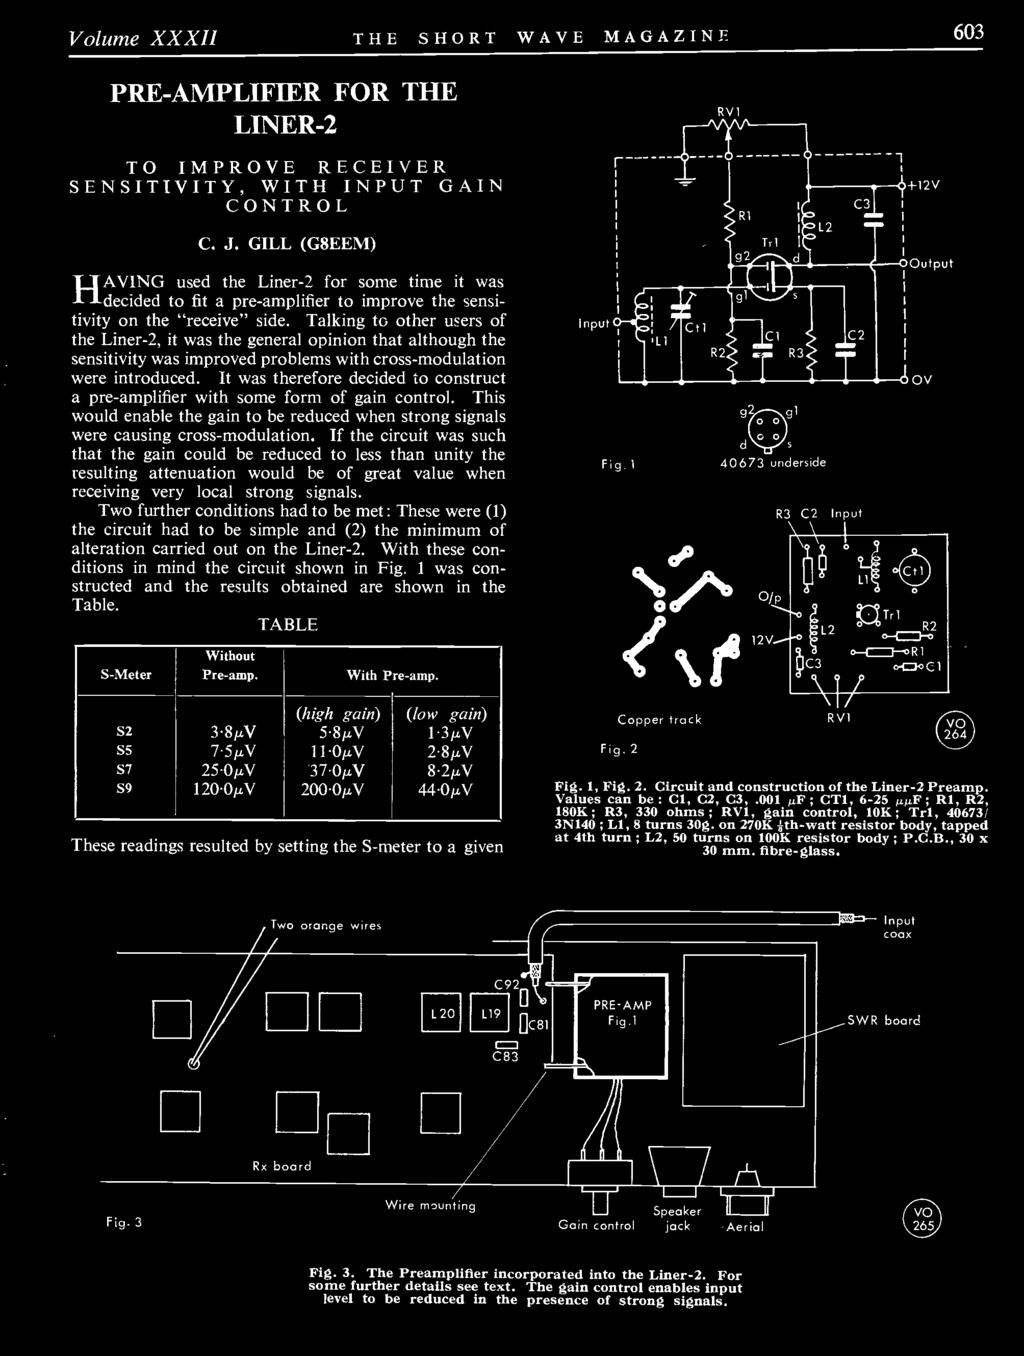 Vol Xxxii January Pdf 12vdc To 220vac Inverter With Sine Wave Outputcircuit Diagram World Talking Other Users Of The Liner 2 It Was General Opinion That